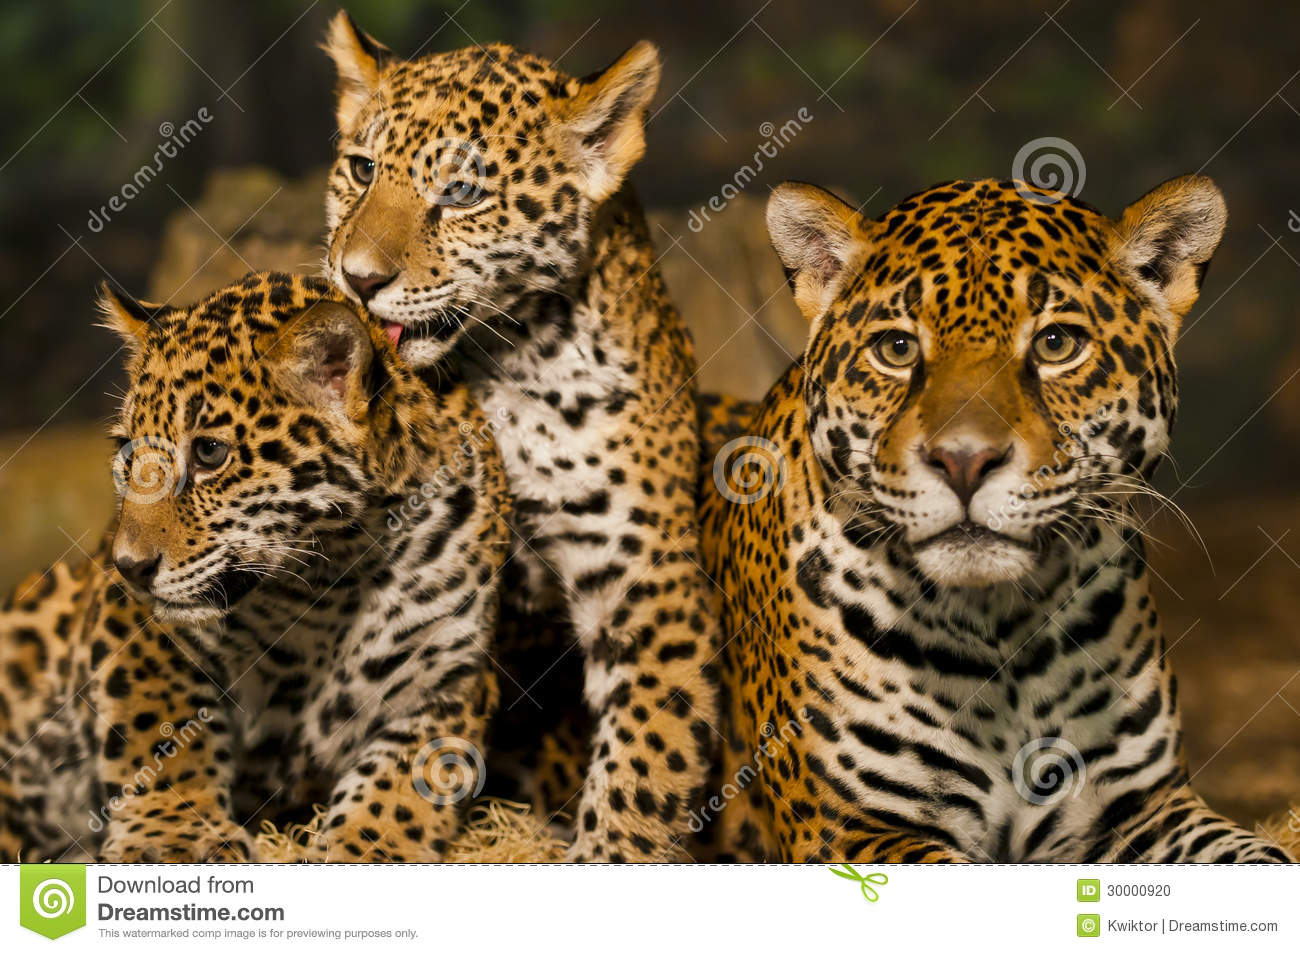 Jaguar Family Stock Photo - Image: 30000920